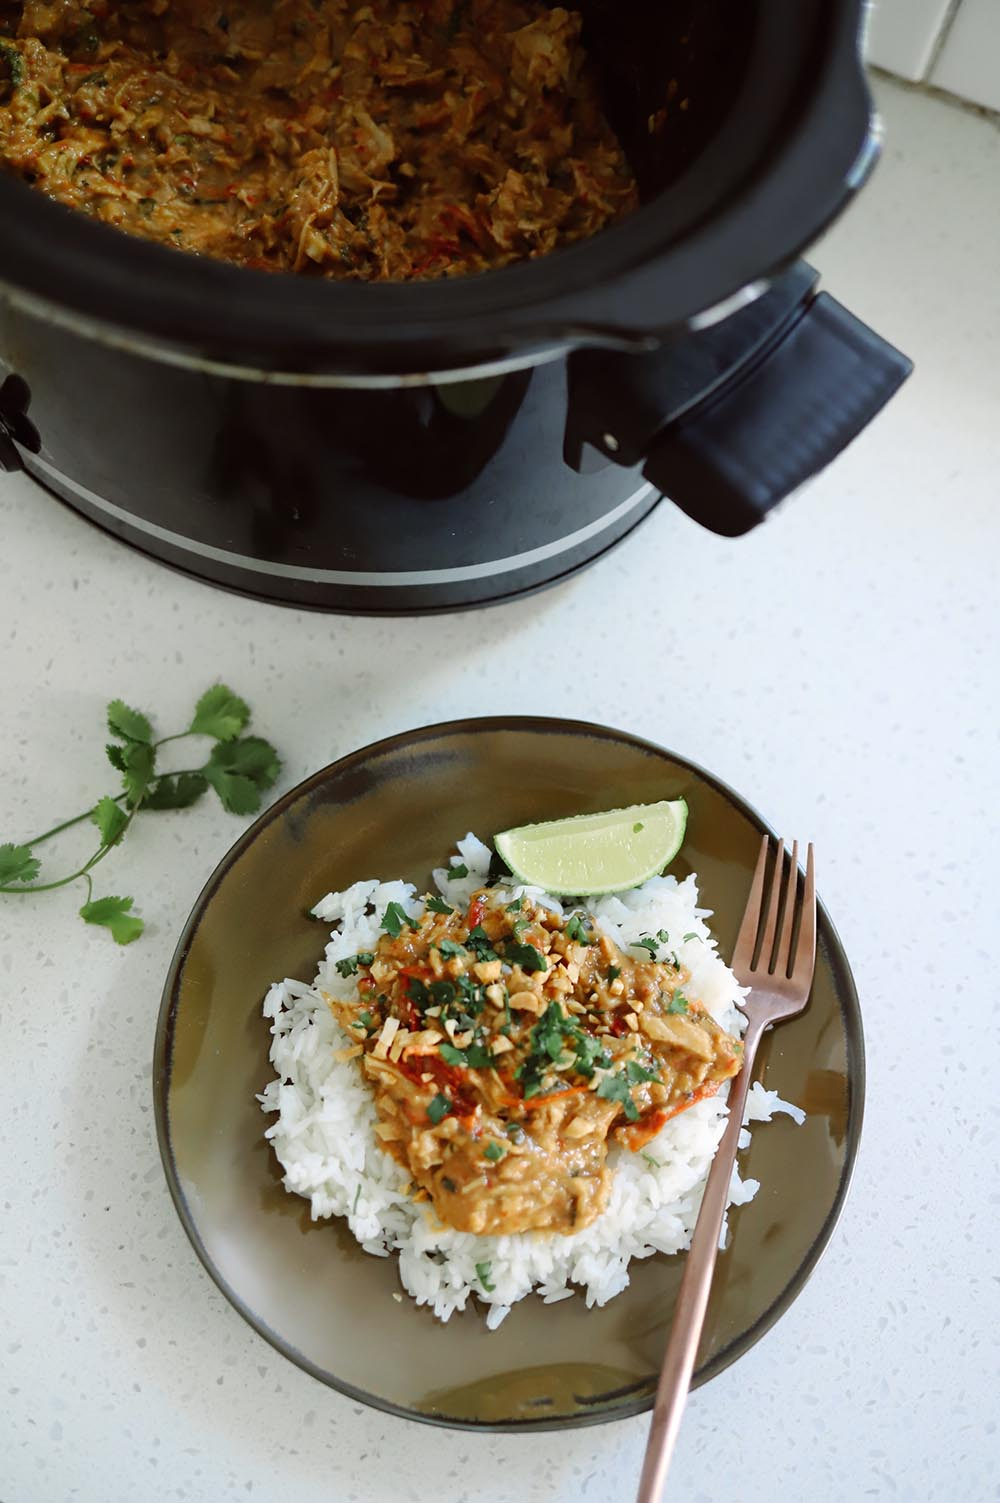 Slow Cooker Thai Chicken with Peanut Sauce recipe from Tabitha Blue of Fresh Mommy Blog   Slow Cooker Thai Chicken by popular Florida lifestyle blog, Fresh Mommy Blog: image of slow cooker Thai chicken with peanut sauce over white rice on a brown ceramic plate with a rose gold fork.